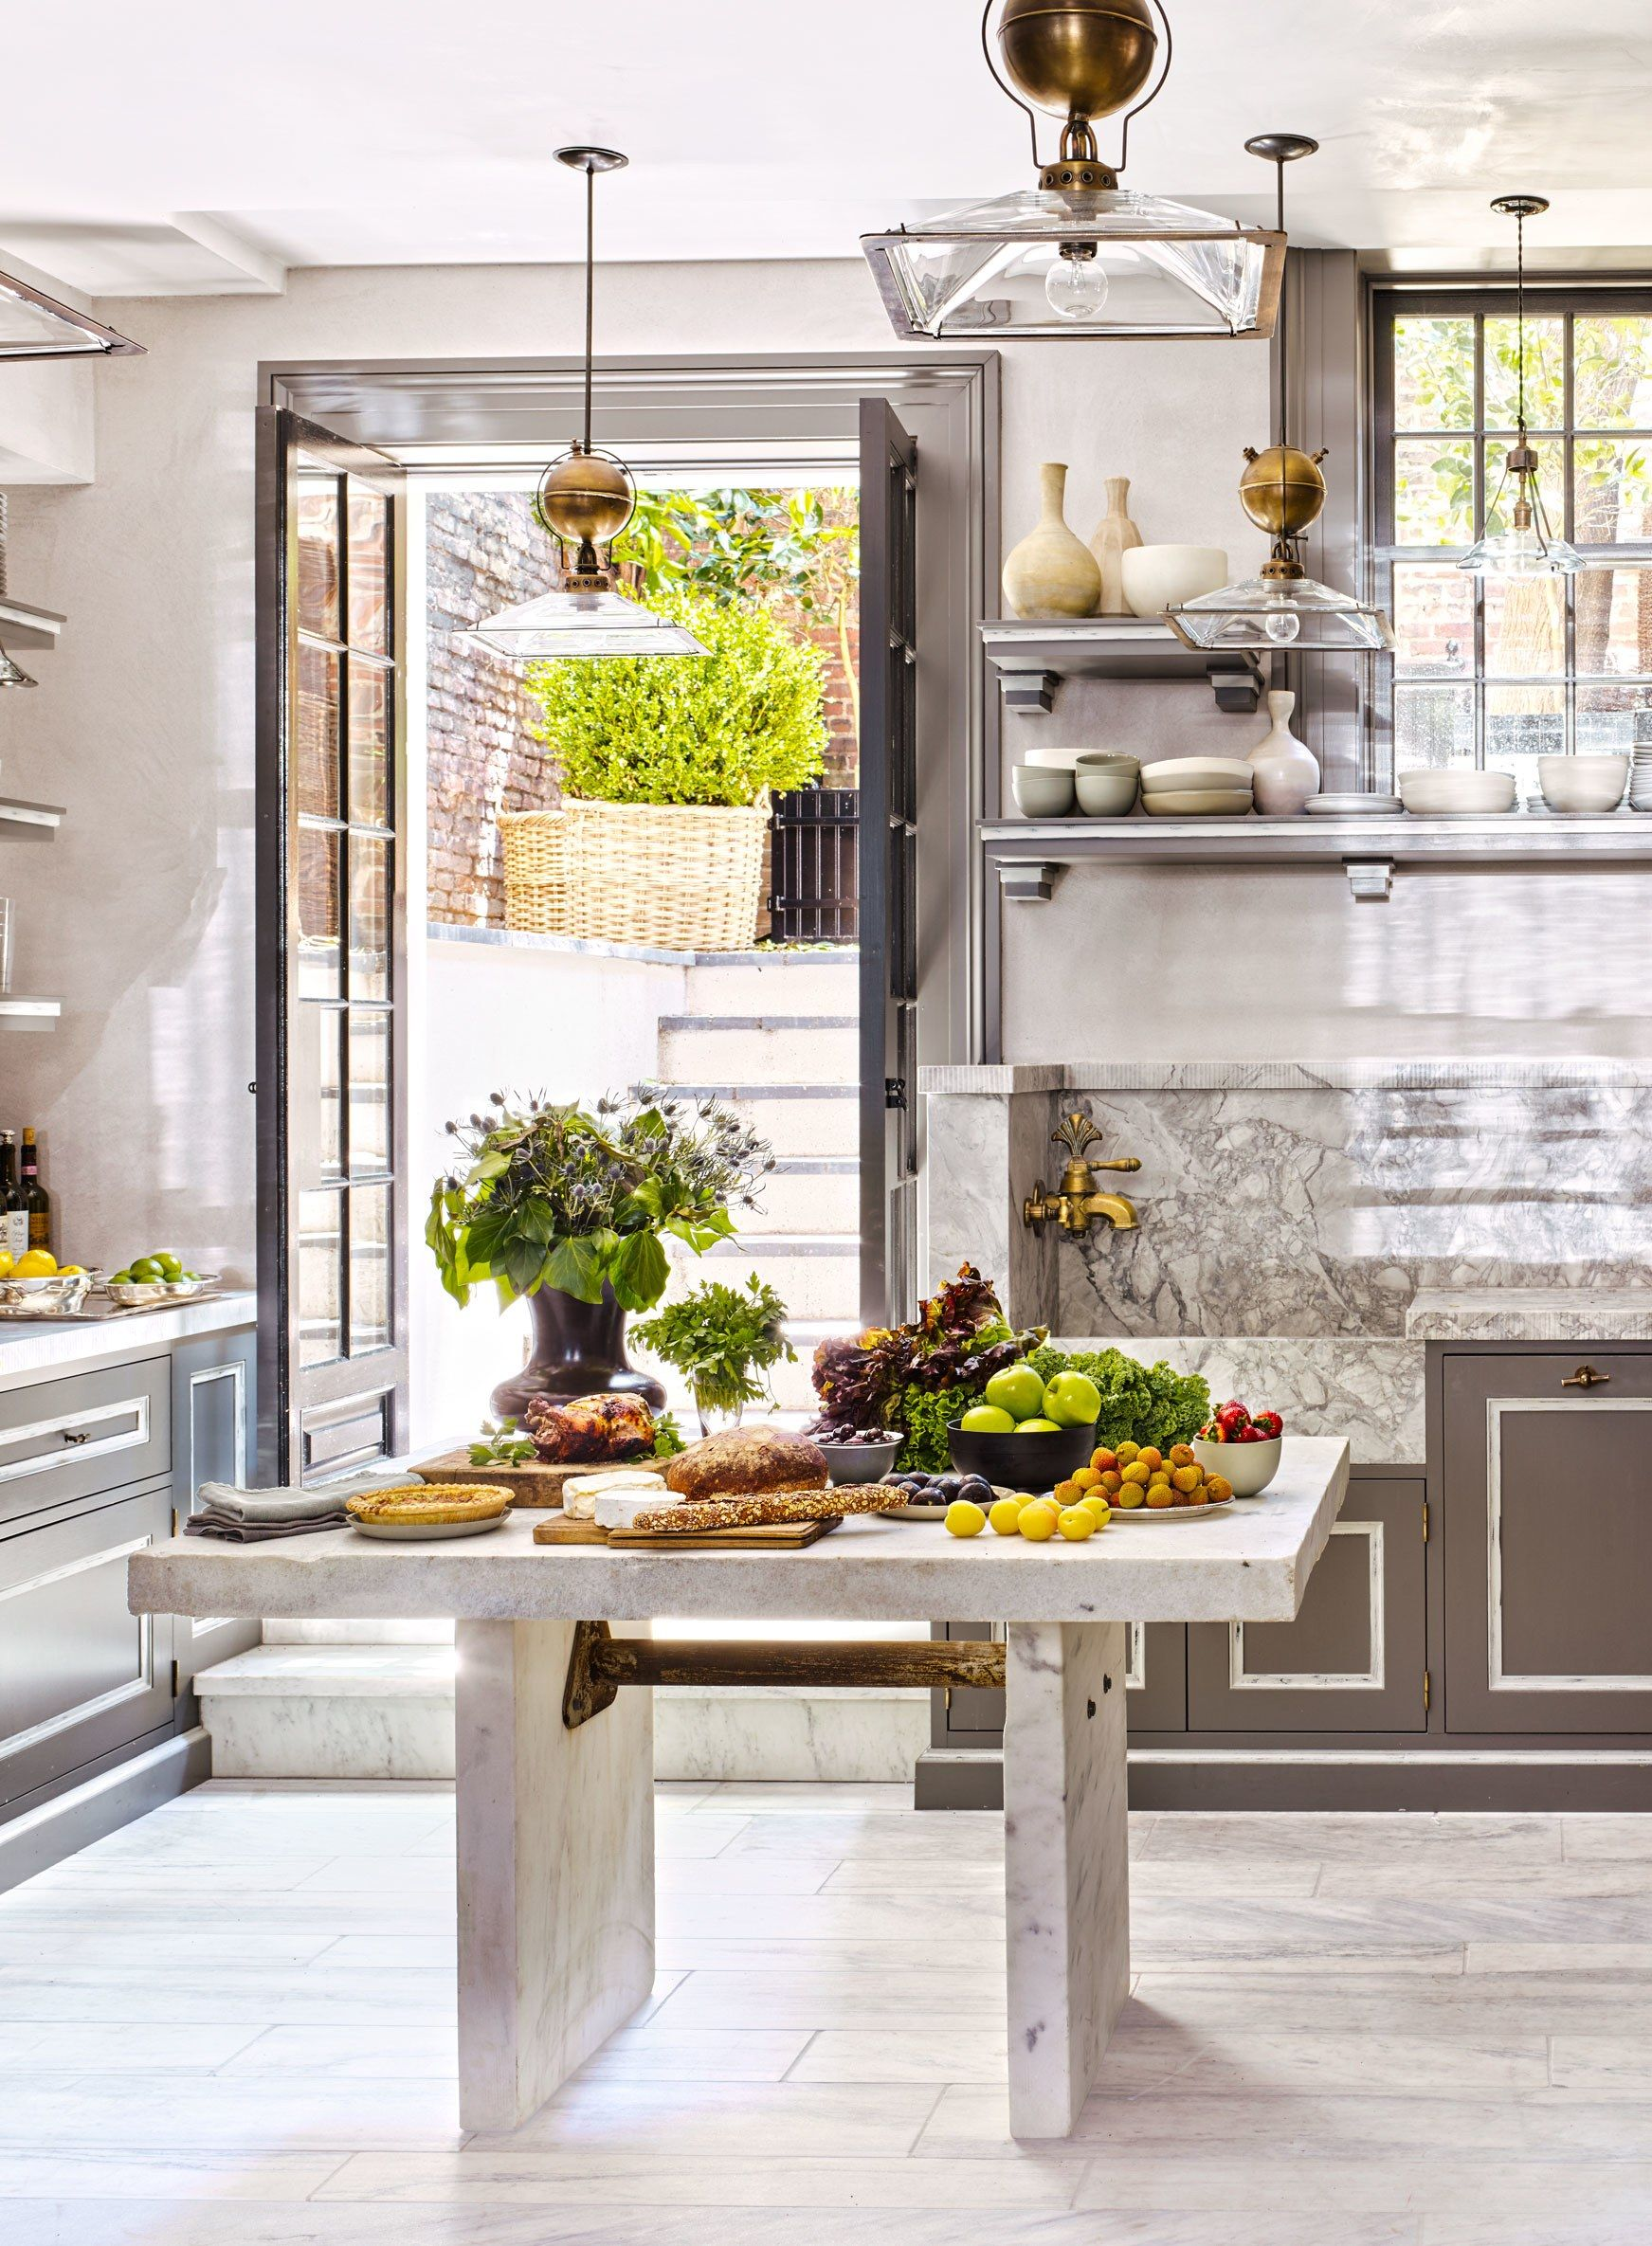 6 Tips for Perfecting Your Kitchen Remodel | Kitchen ...